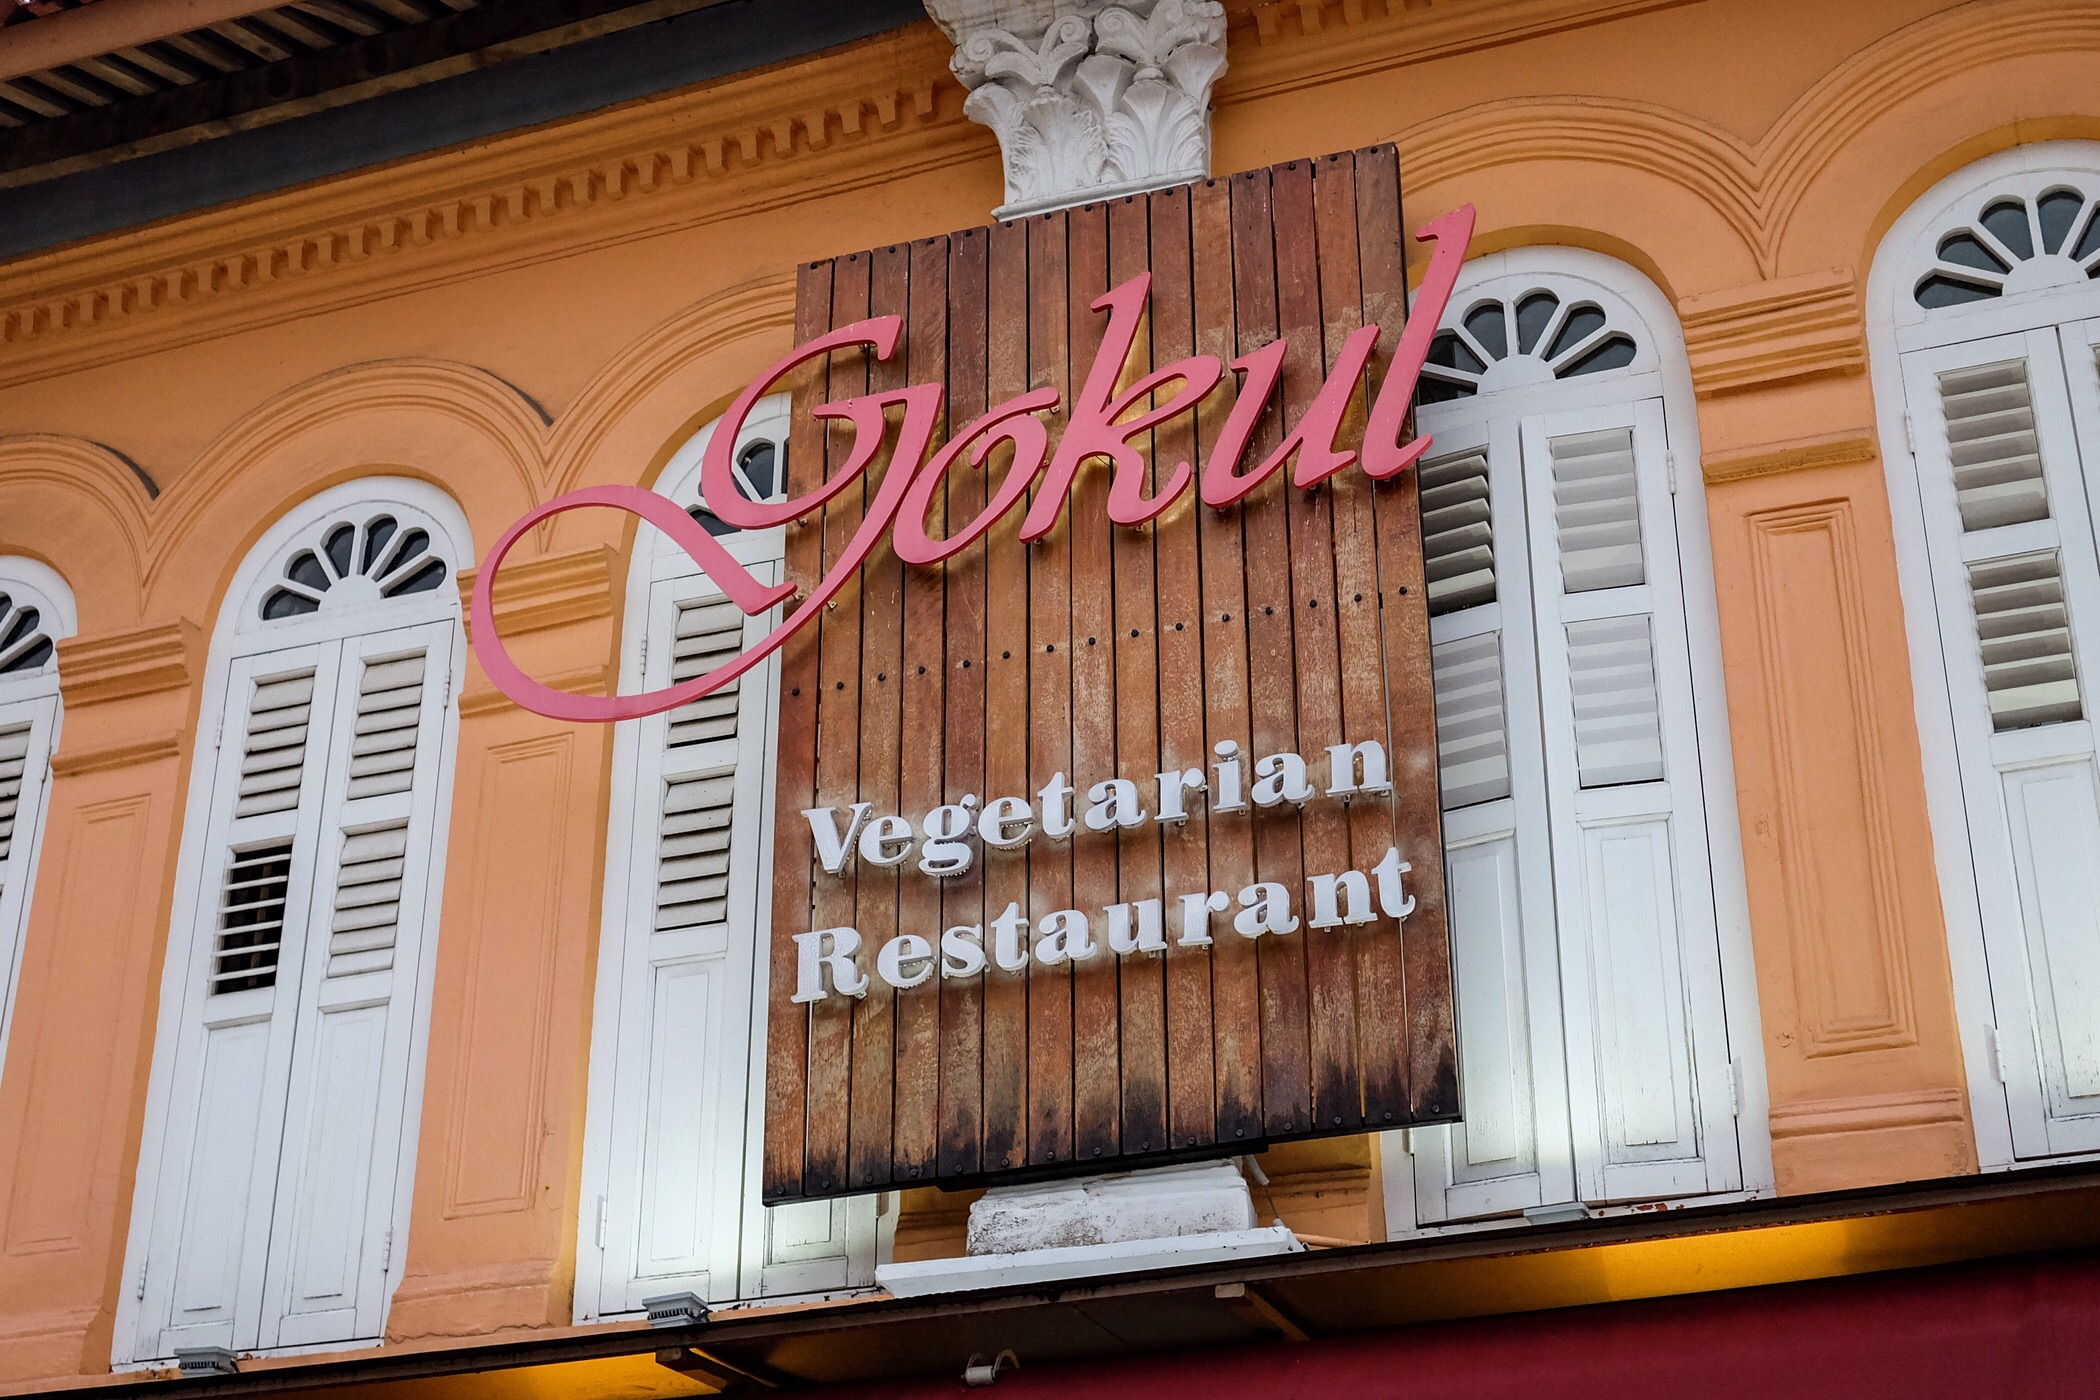 Gokul vegetarian restaurant — Singapore